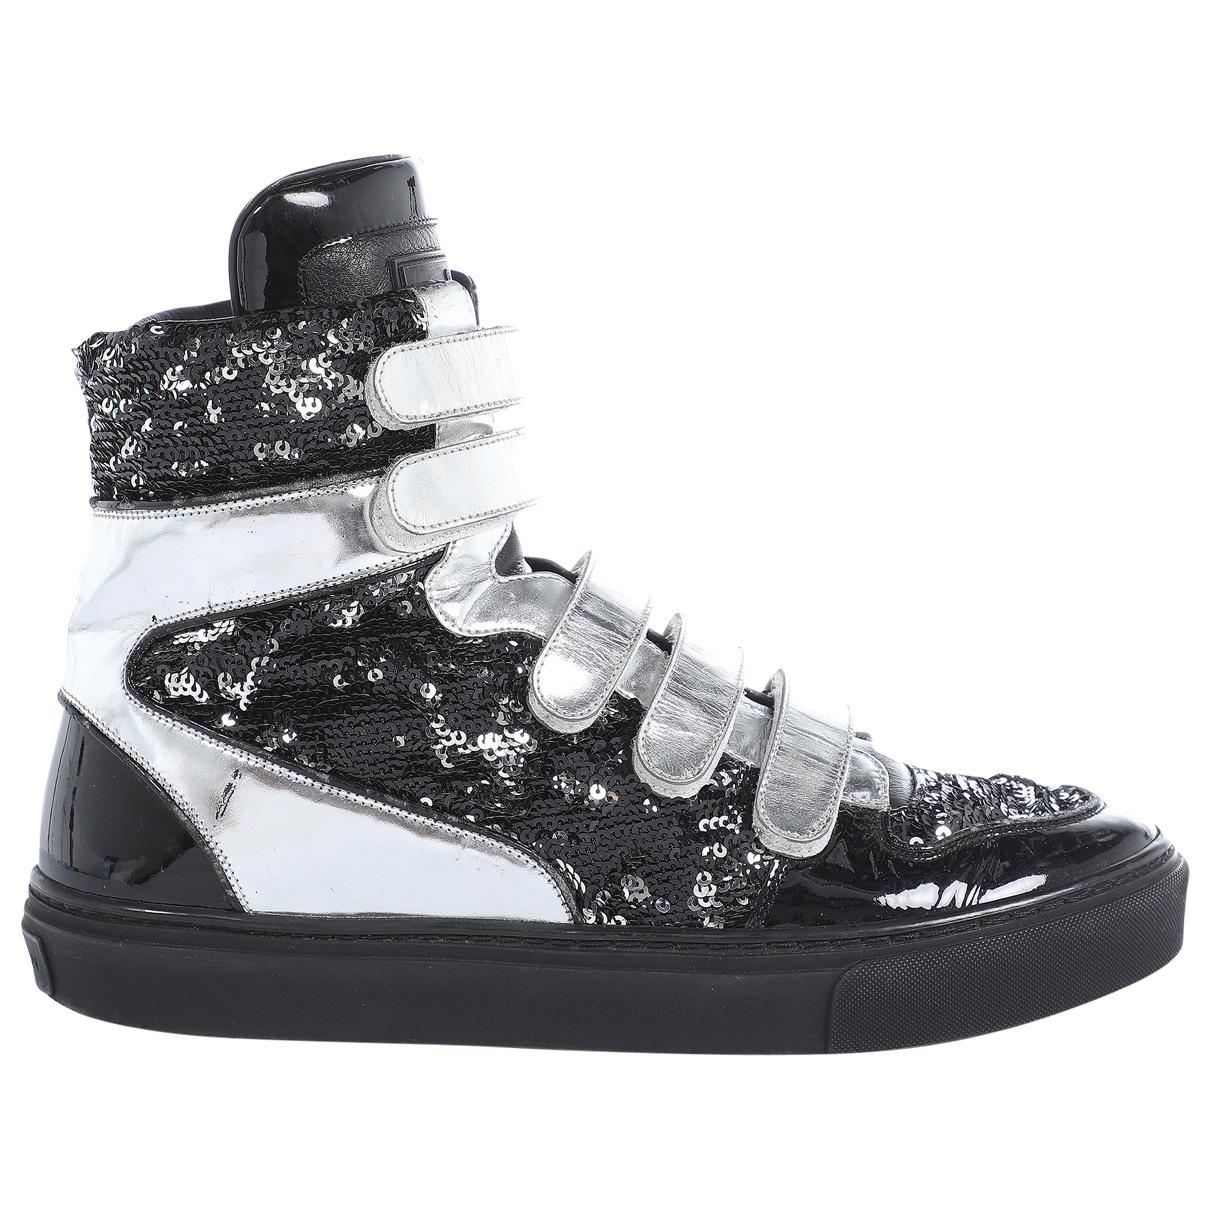 43b16e68f64c Louis Vuitton. Women s Metallic Silver Leather Trainers. £341 From Vestiaire  Collective